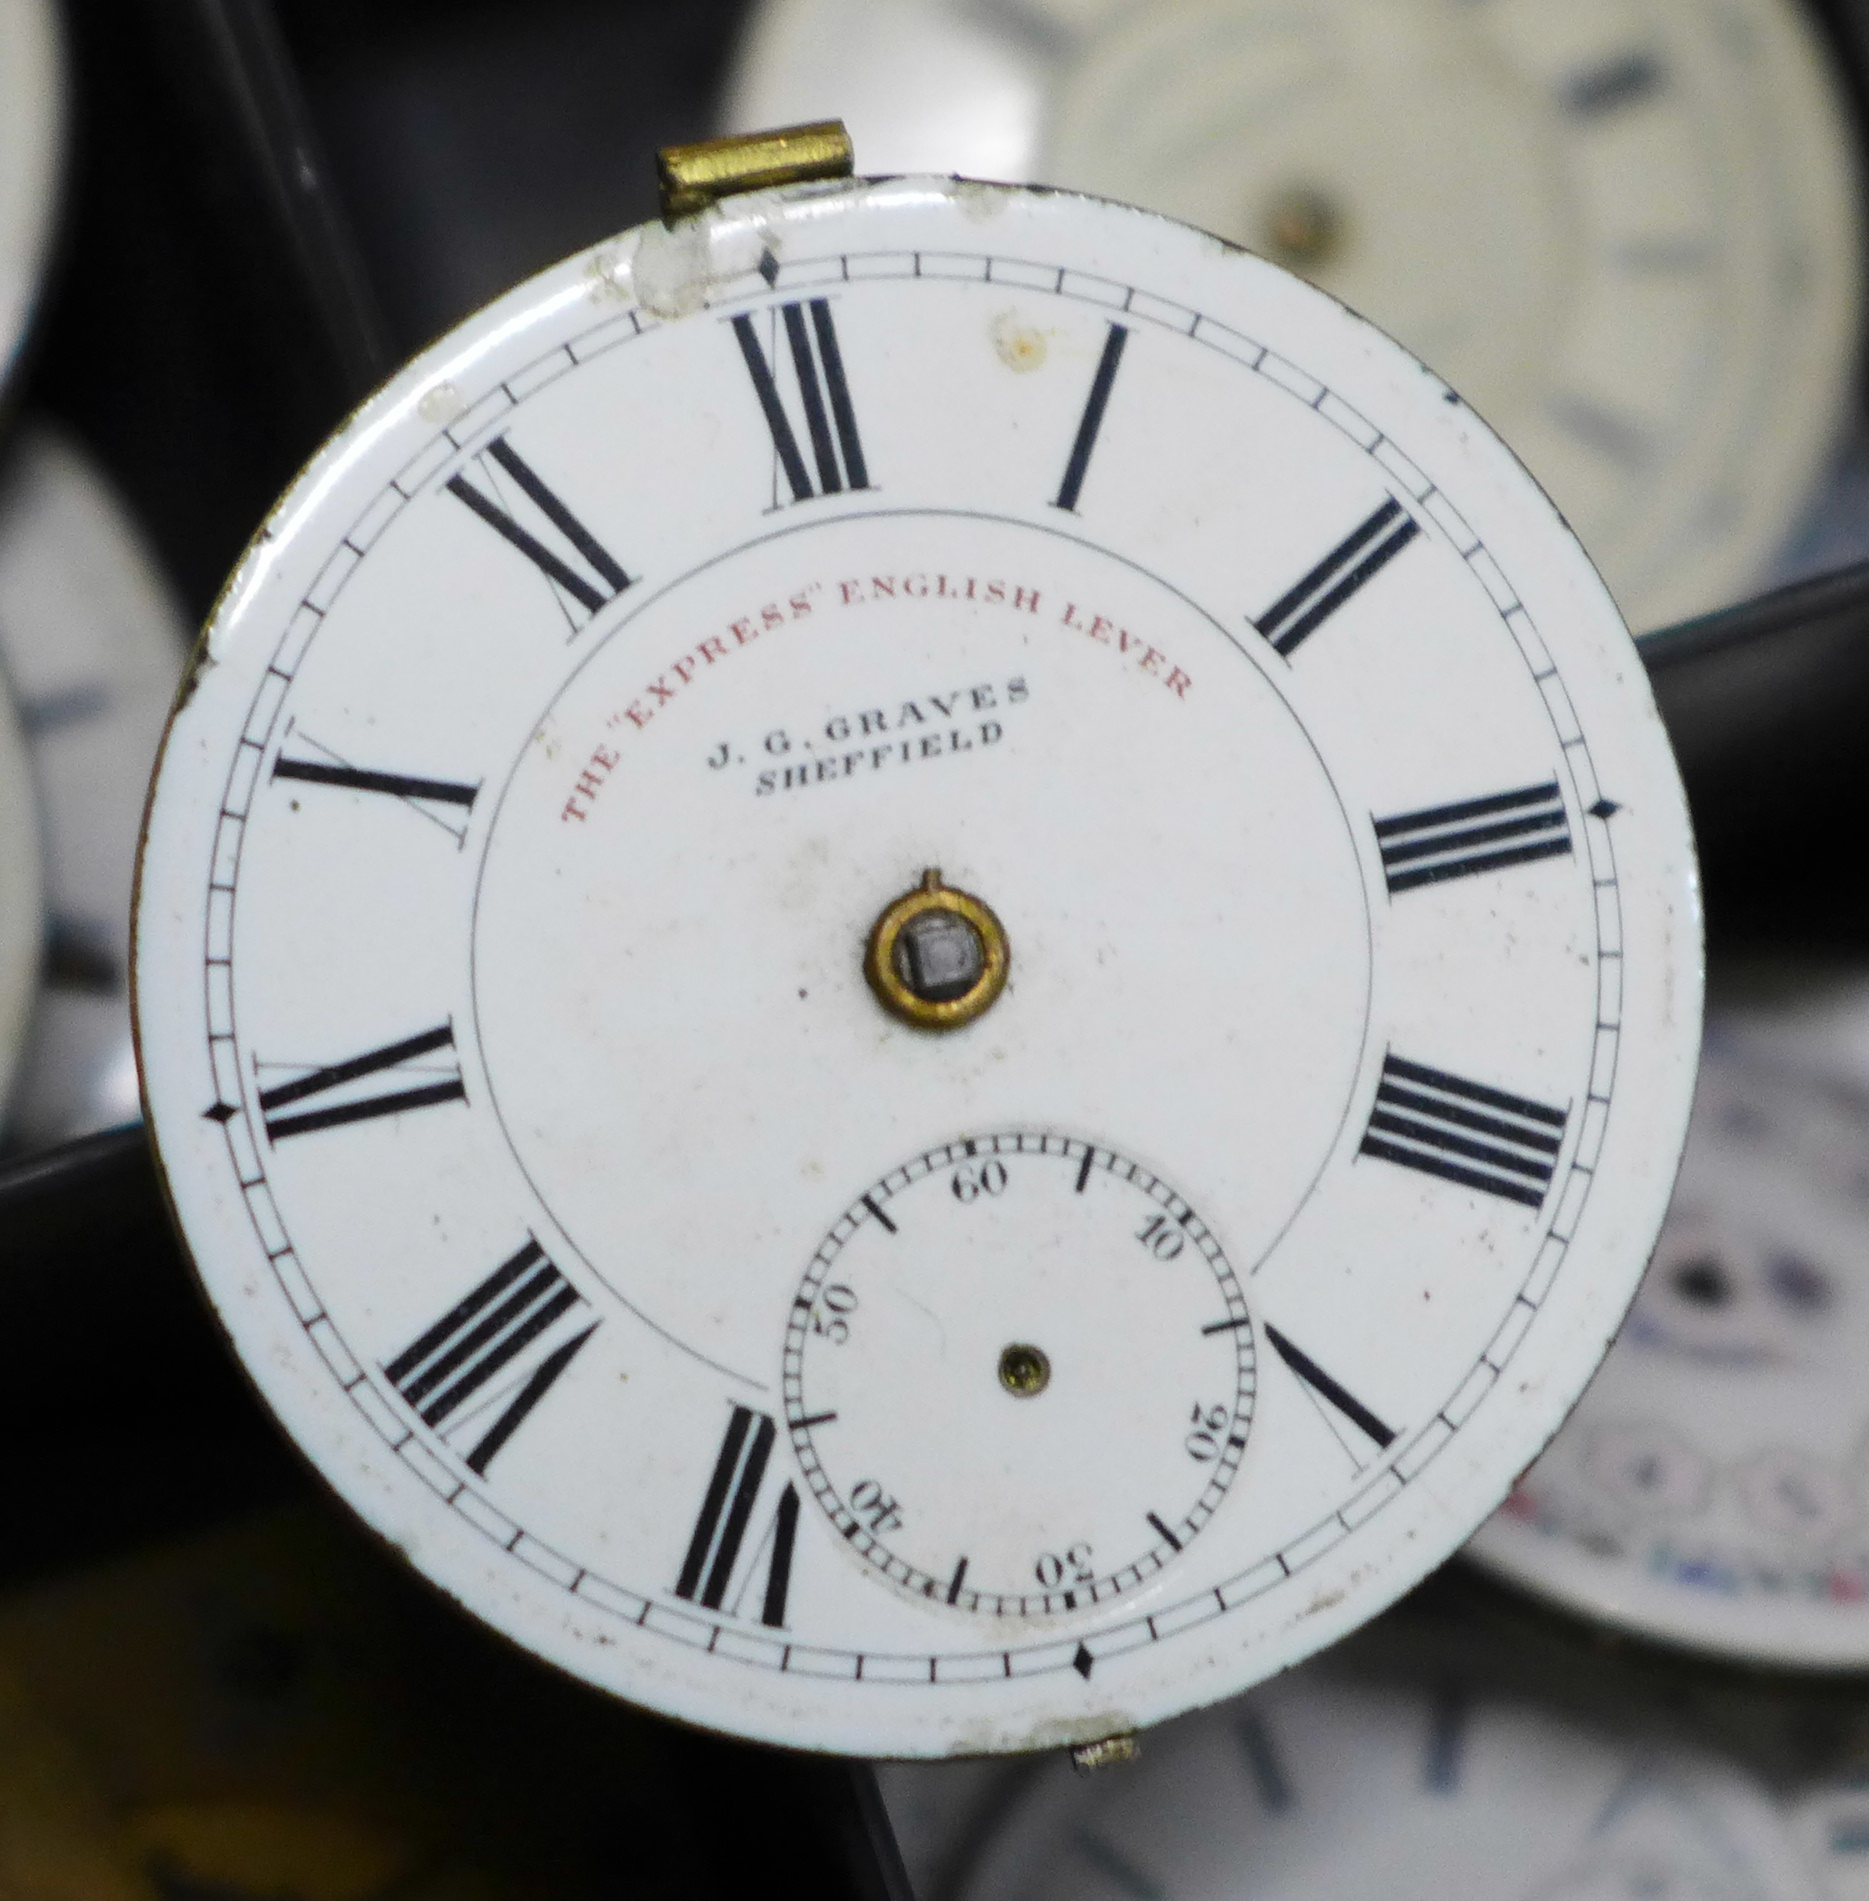 A large collection of pocket watch movements and dials plus an Action Timer stopwatch - Image 6 of 6